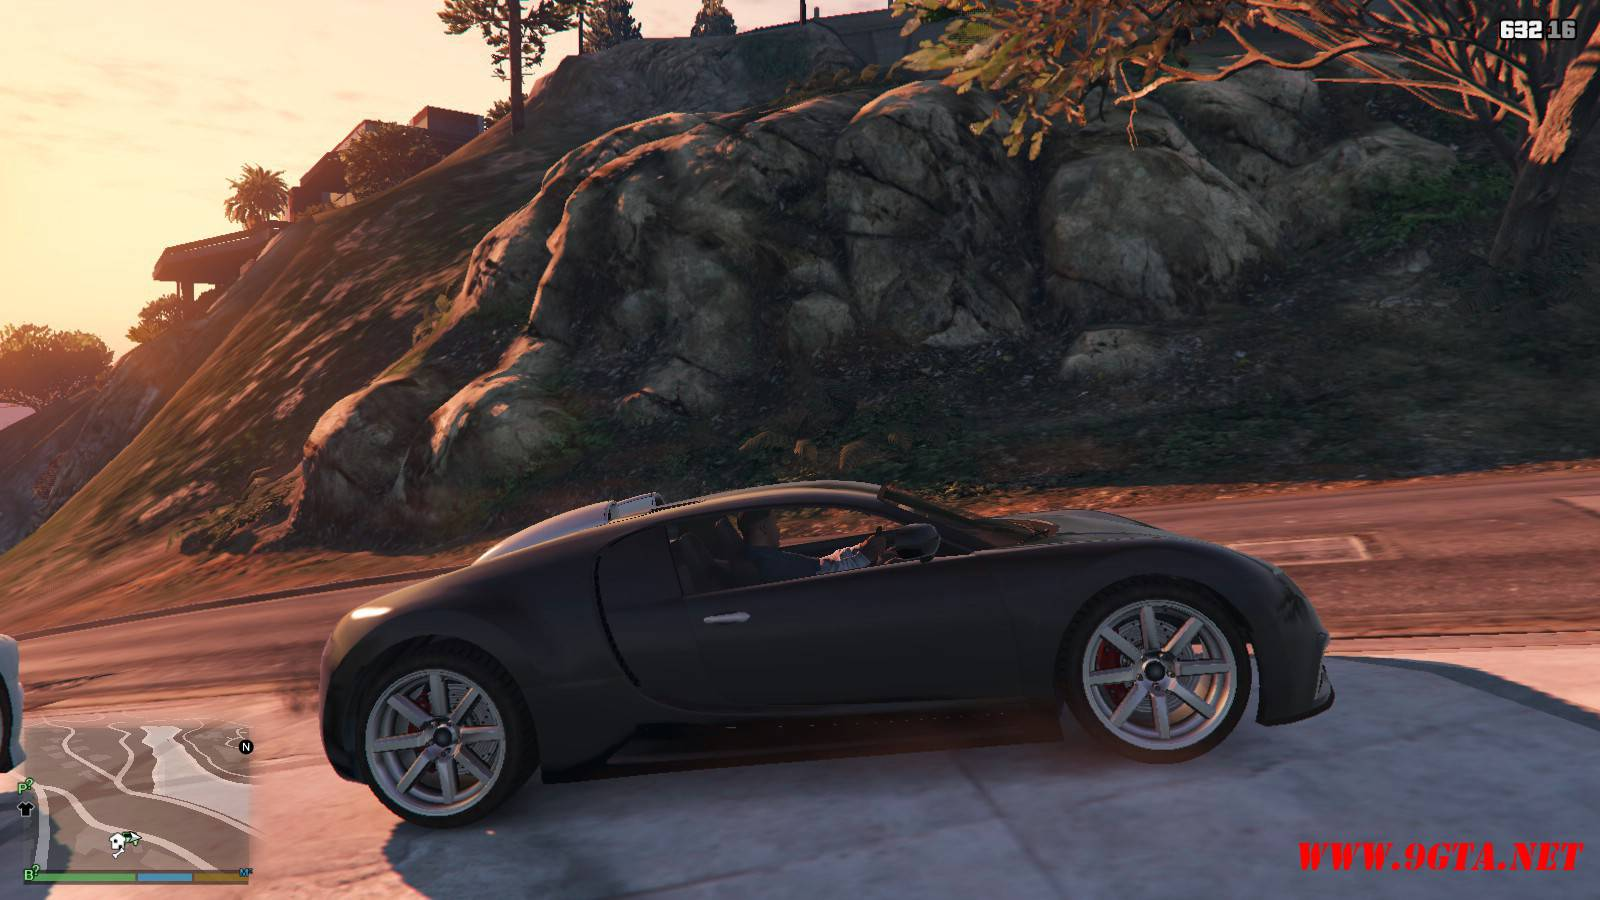 Truffade Adders Sport GTA5 Mods (6)